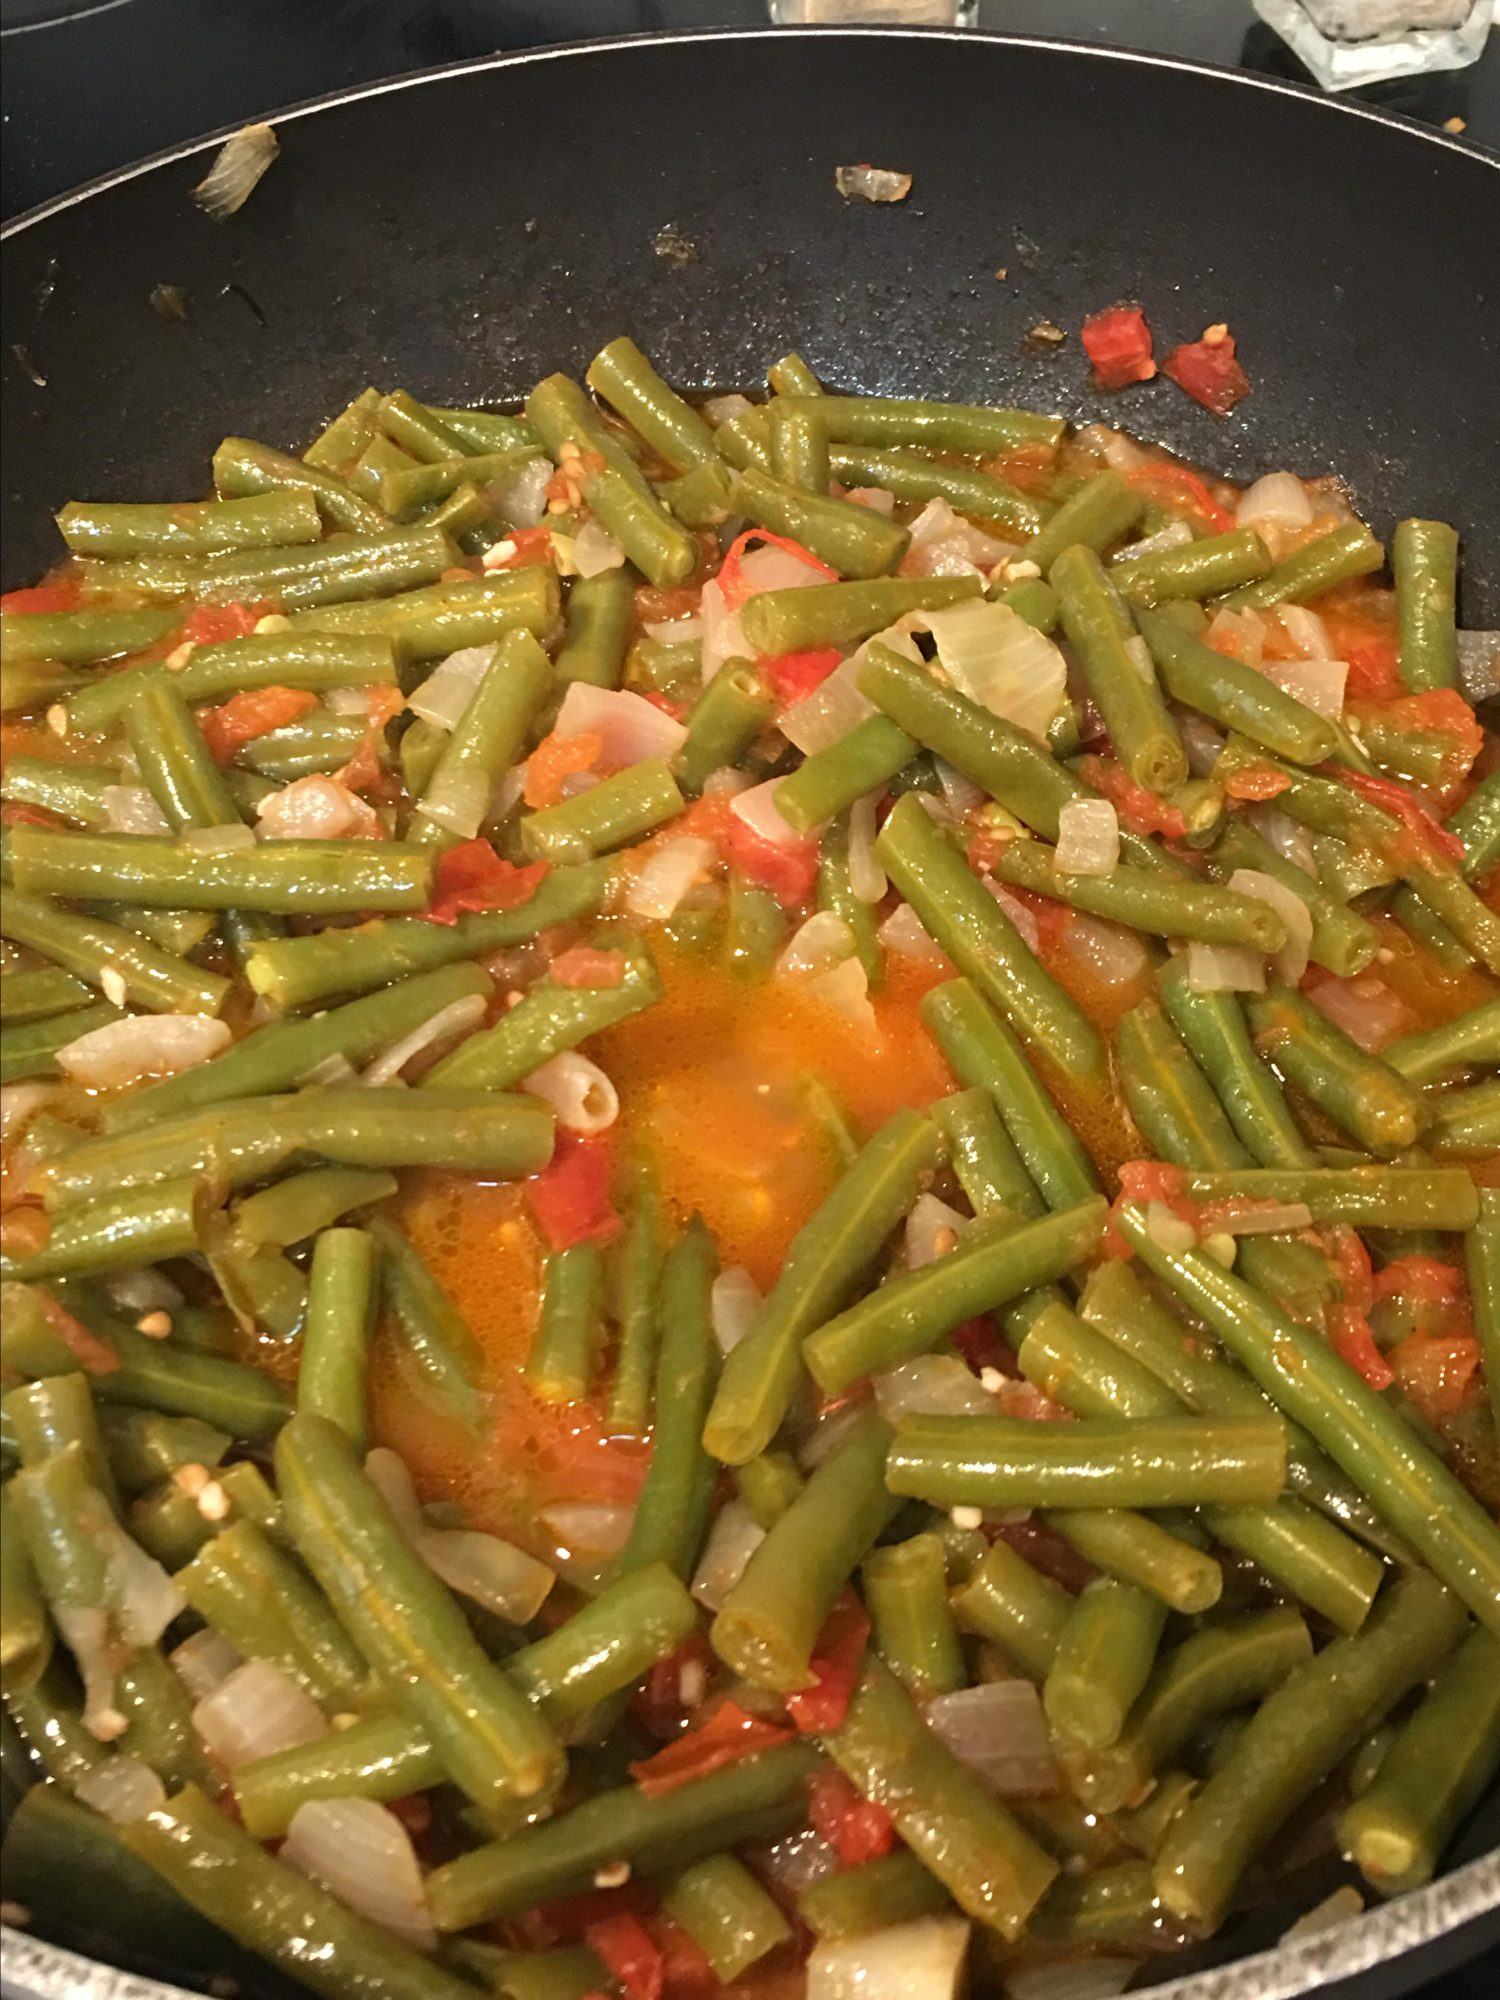 a pan of green beans with onions and tomatoes simmering in a red liquid